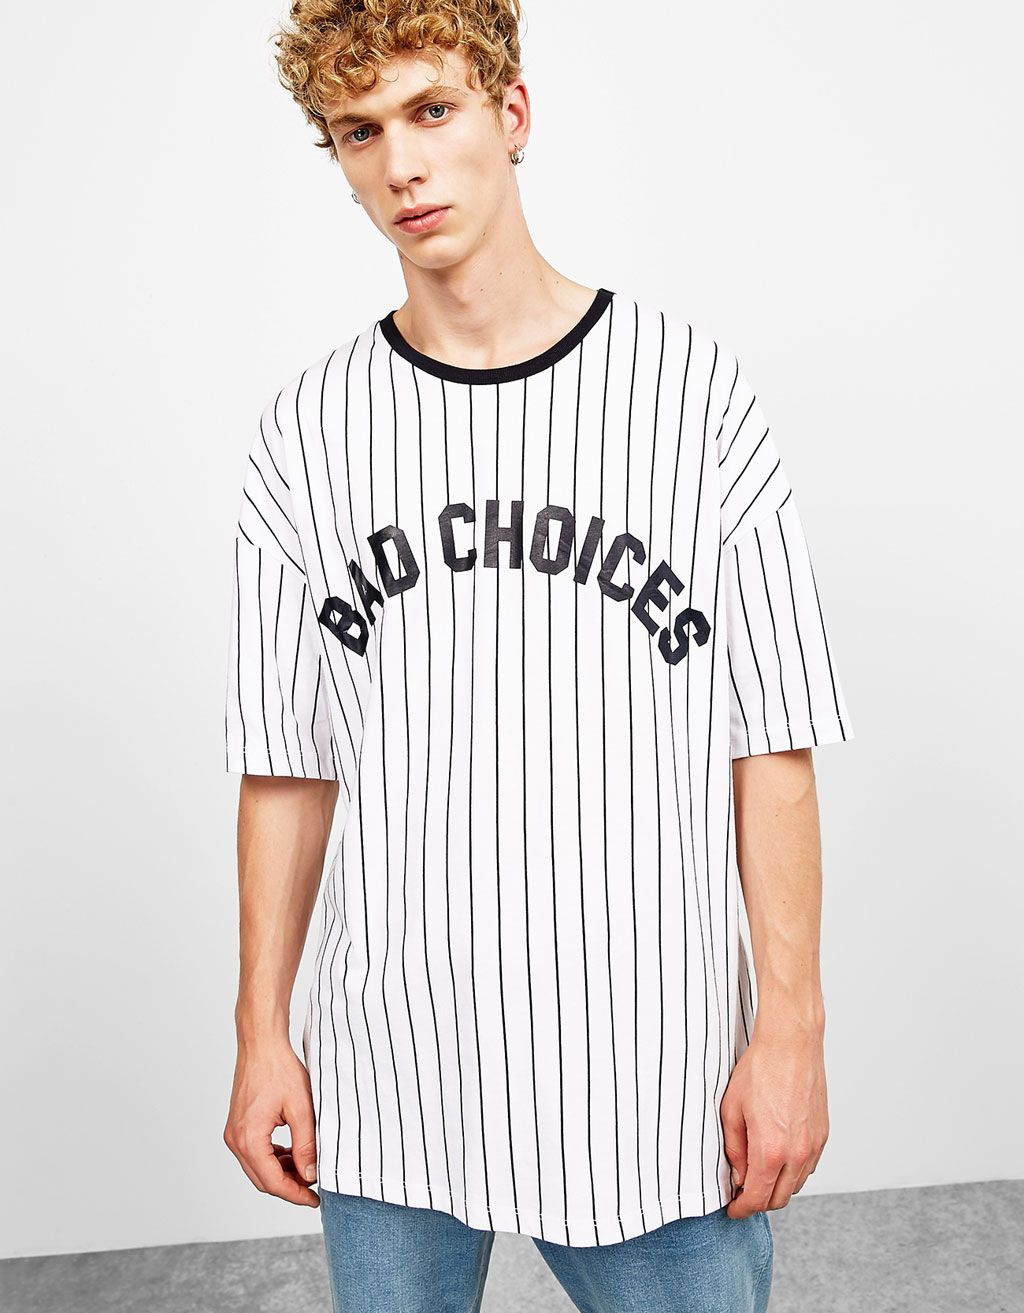 8683e6e4ee09 Boxy fit vertical striped text T-shirt. Discover this and many more items  in Bershka with new products every week